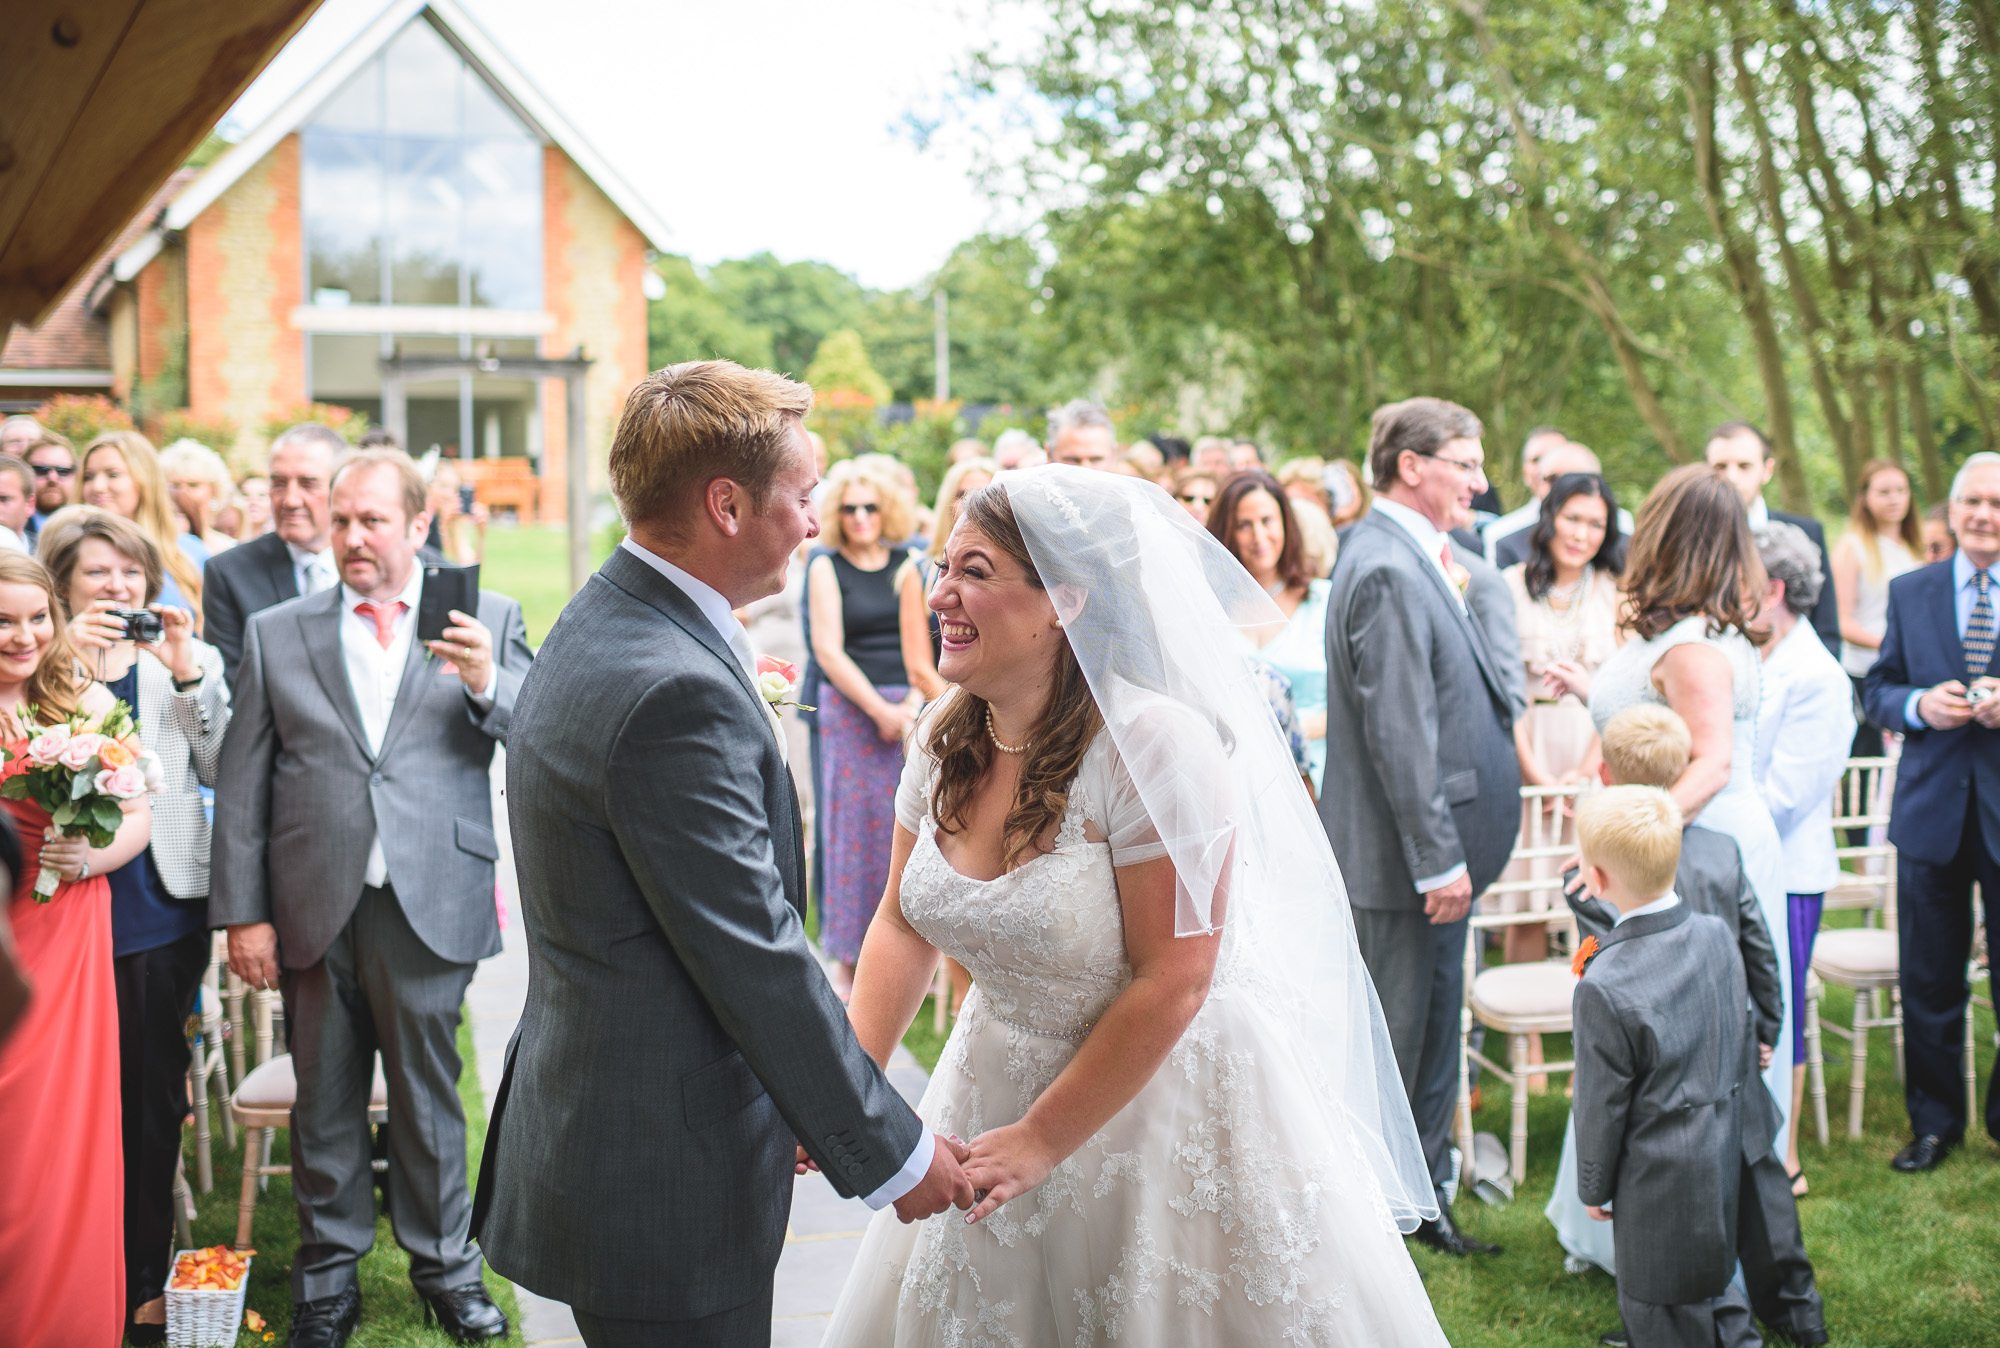 Lauren and Lee - Millbridge Court wedding photography (65 of 166)